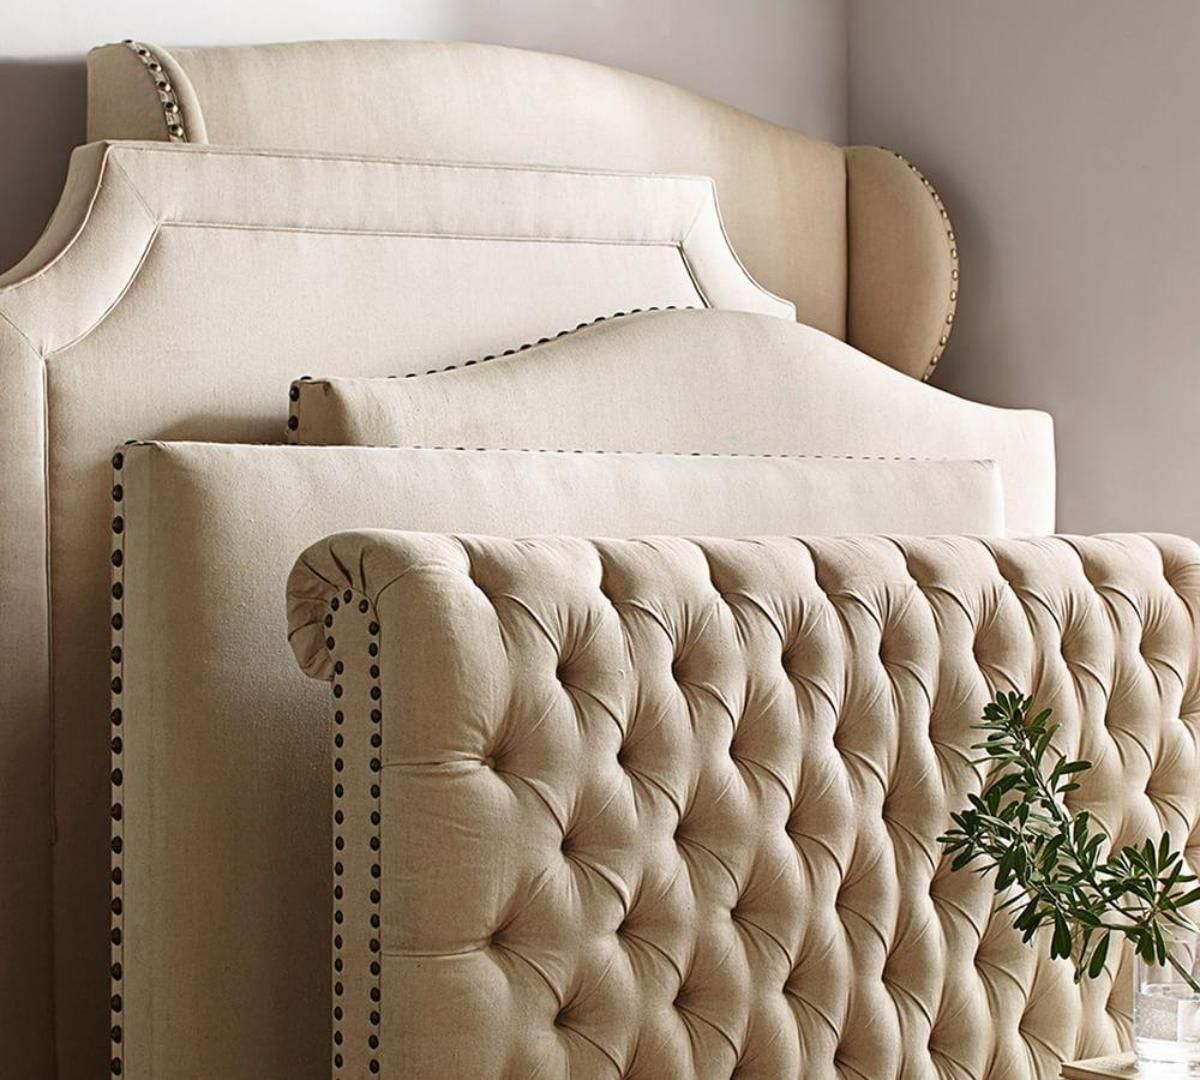 Chesterfield upholstered bed headboard. Pottery barn- just purchased ...